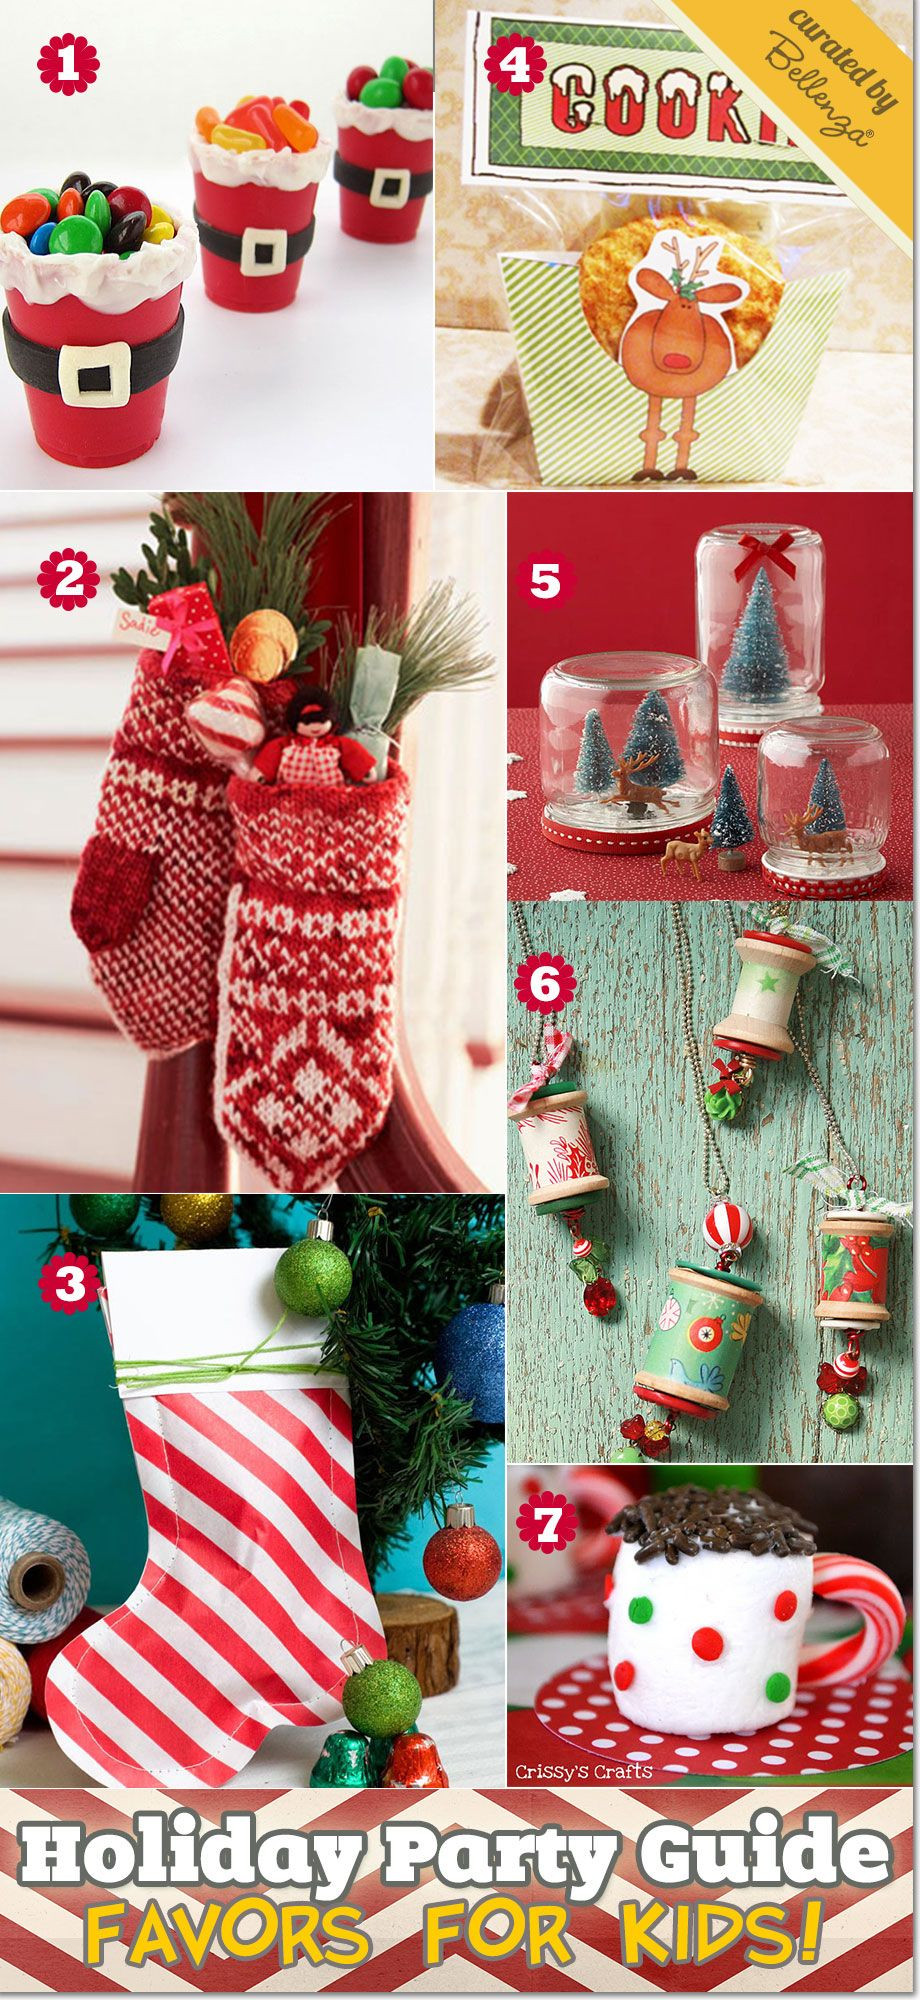 DIY Party Favors For Kids  Homemade Christmas Party Favors Thoughtful and Handmade